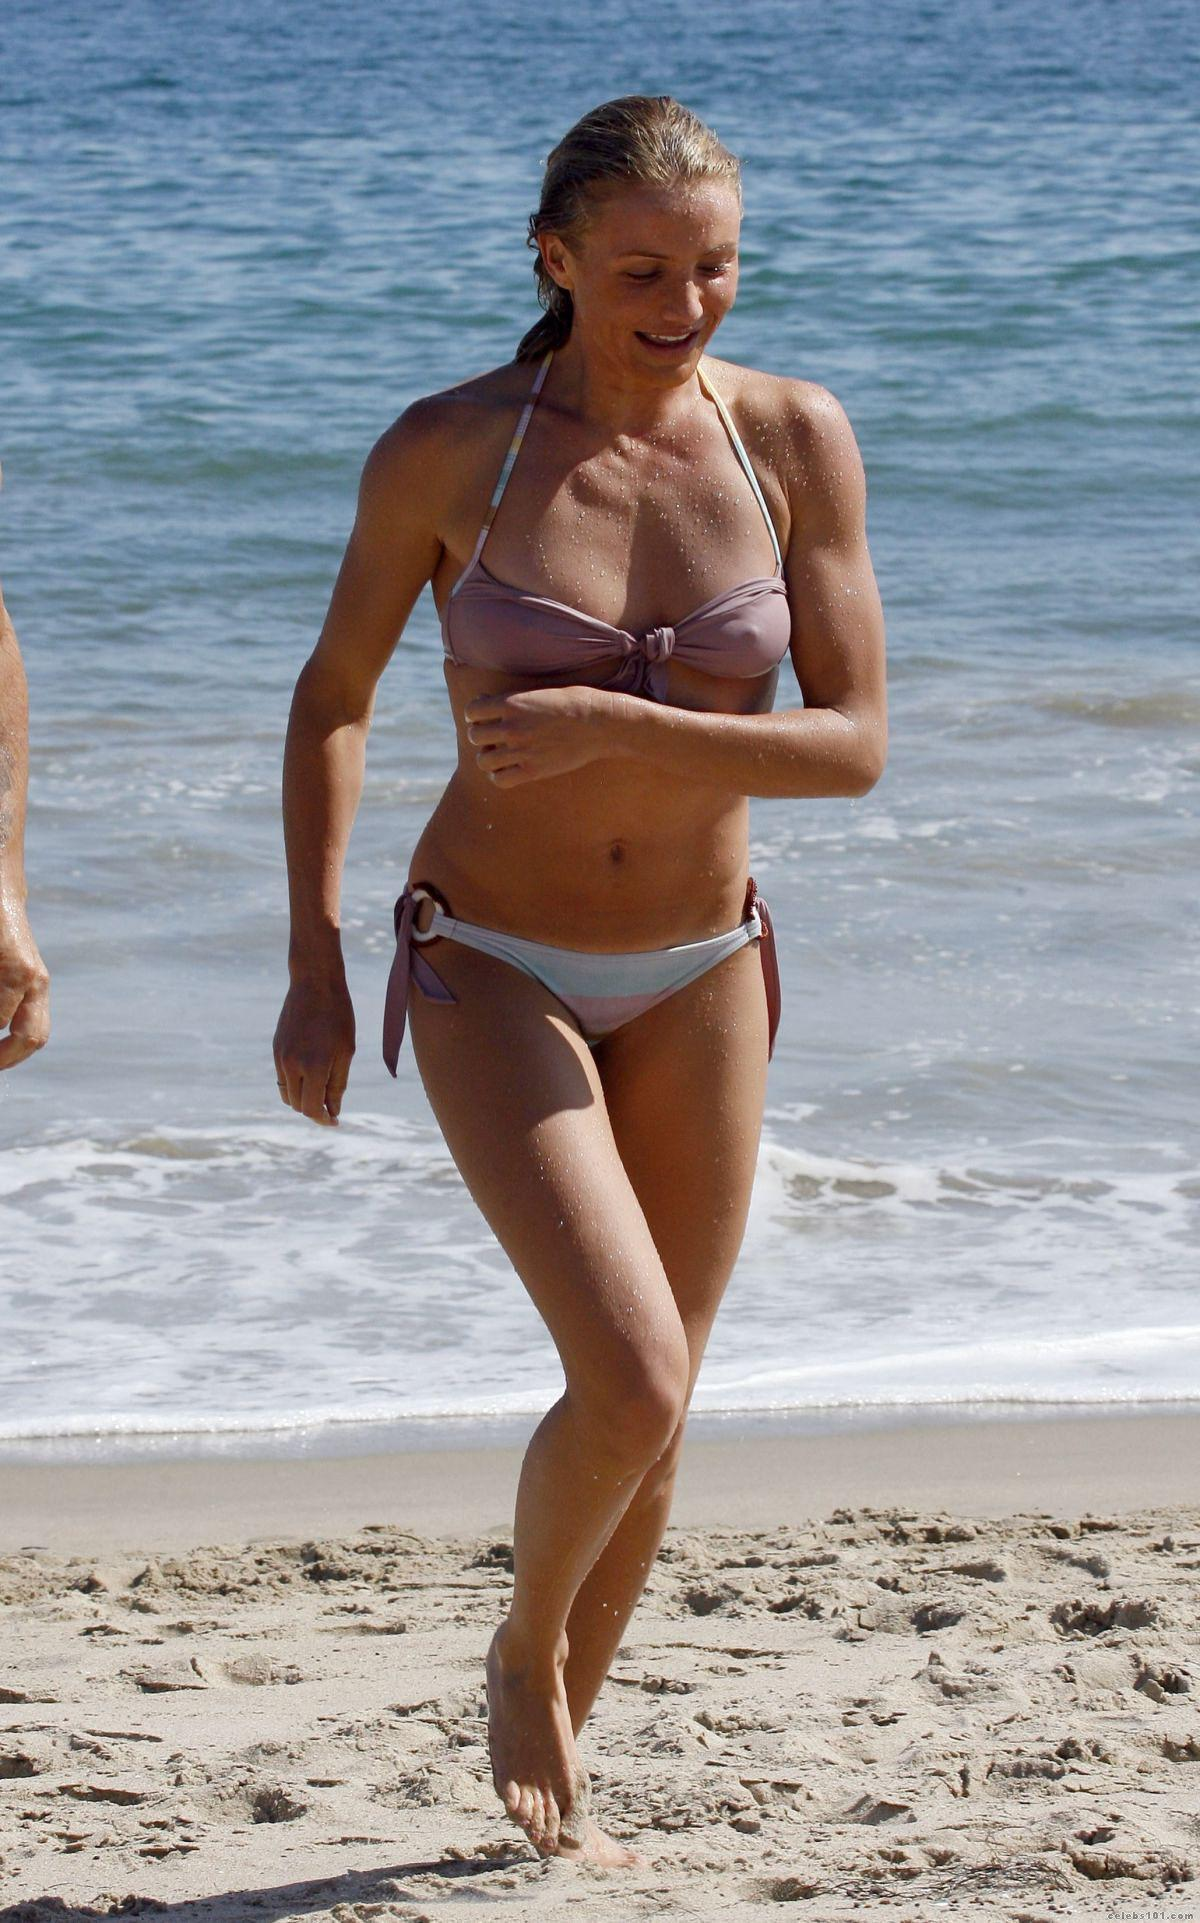 Remarkable, Cameron diaz see through bikini question